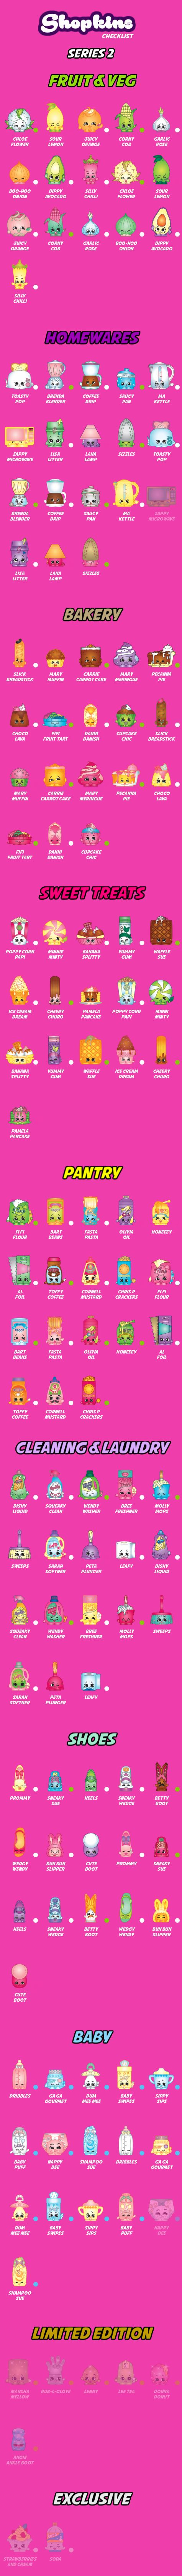 Check out my Shopkins Collection - Get the Shopkins Checklist app on iOS and Android App Stores!